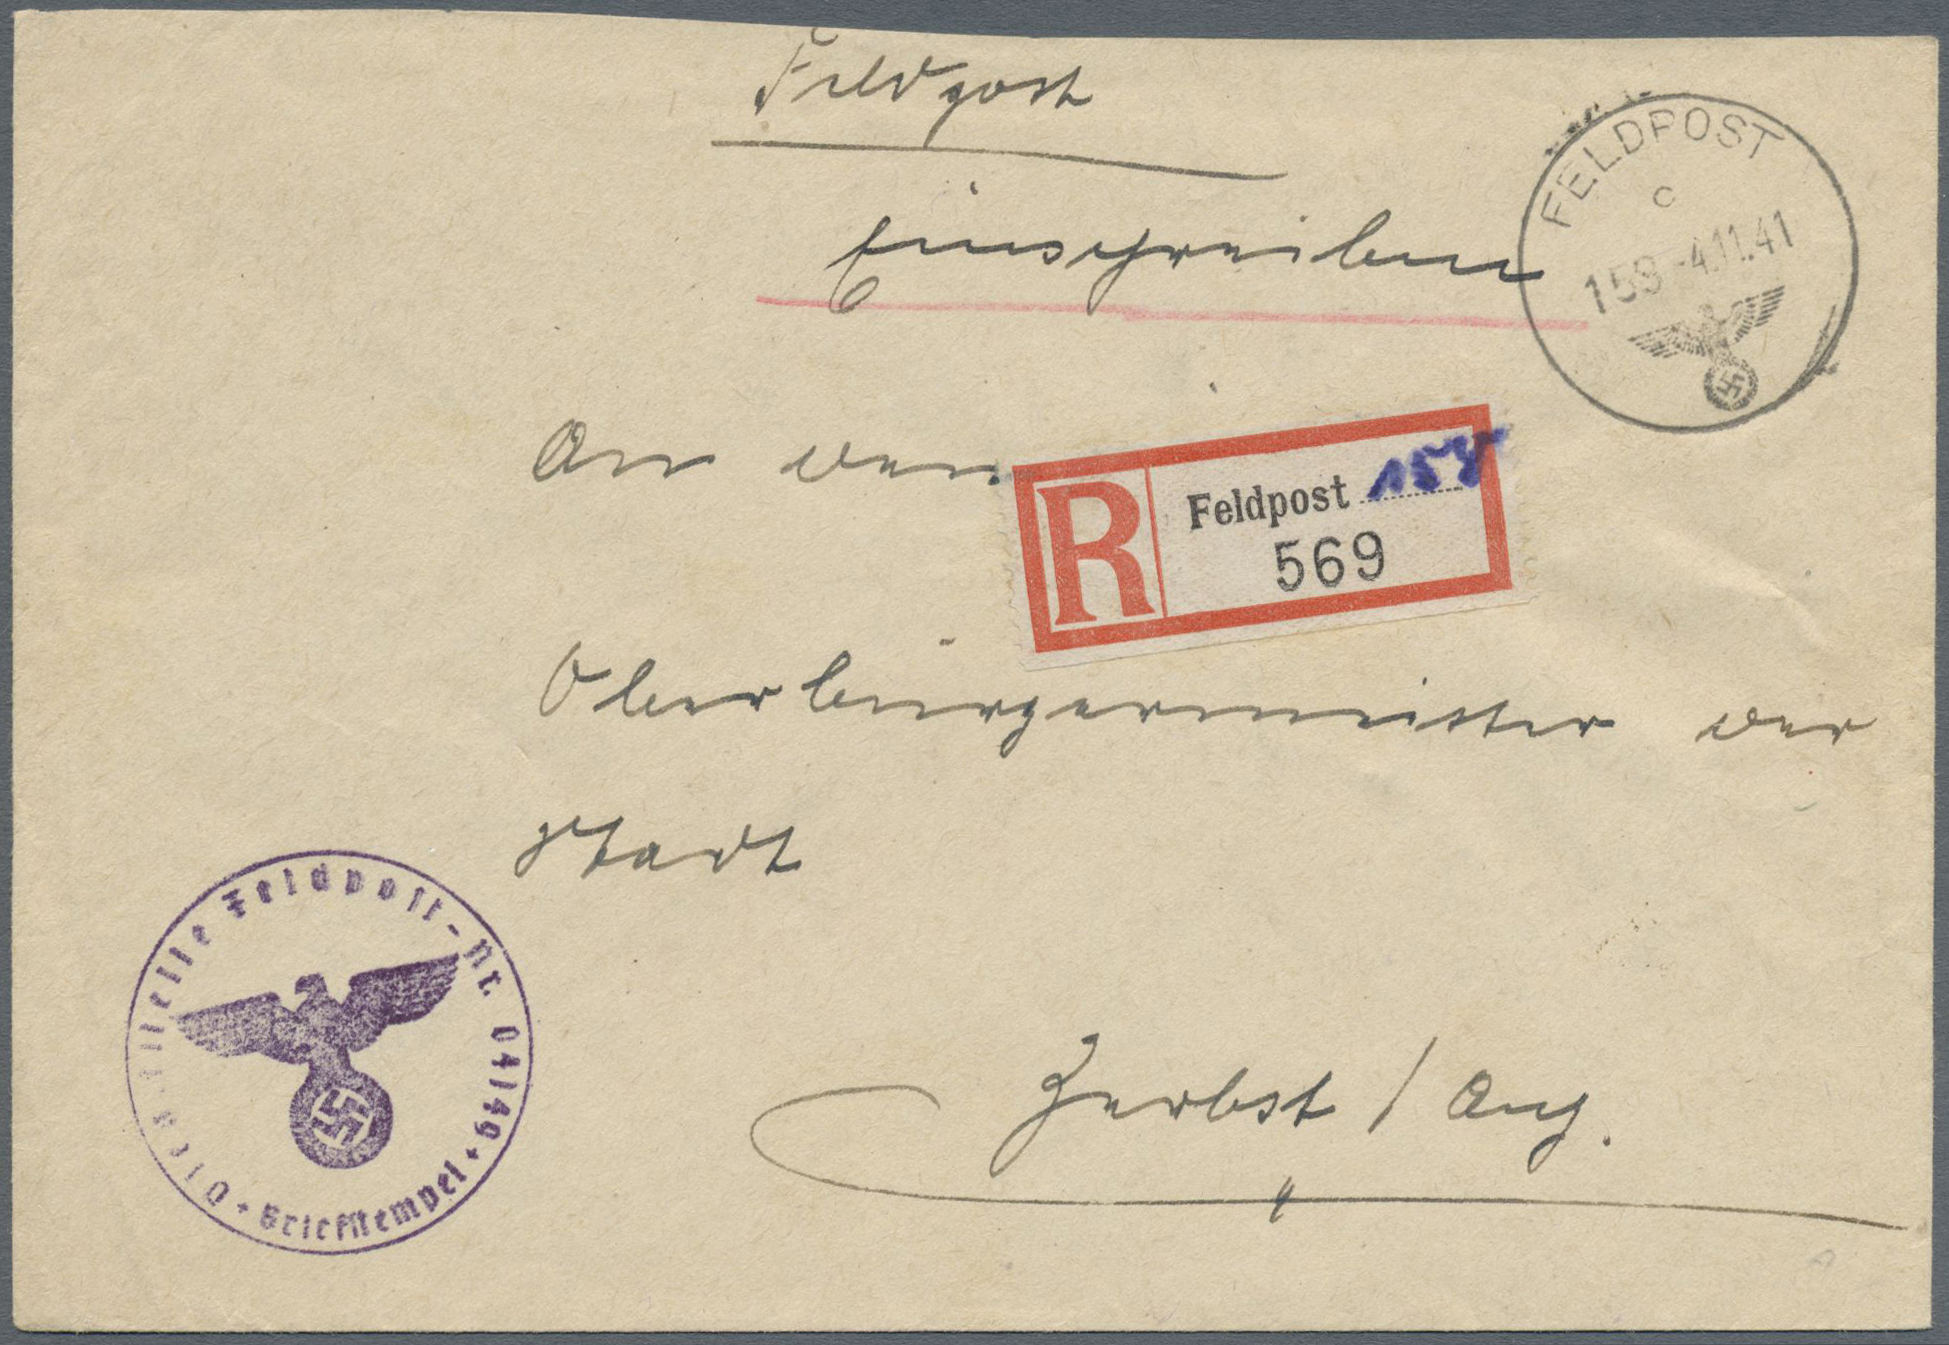 Lot 37417 - feldpost 1. weltkrieg  -  Auktionshaus Christoph Gärtner GmbH & Co. KG Collections Germany,  Collections Supplement, Surprise boxes #39 Day 7